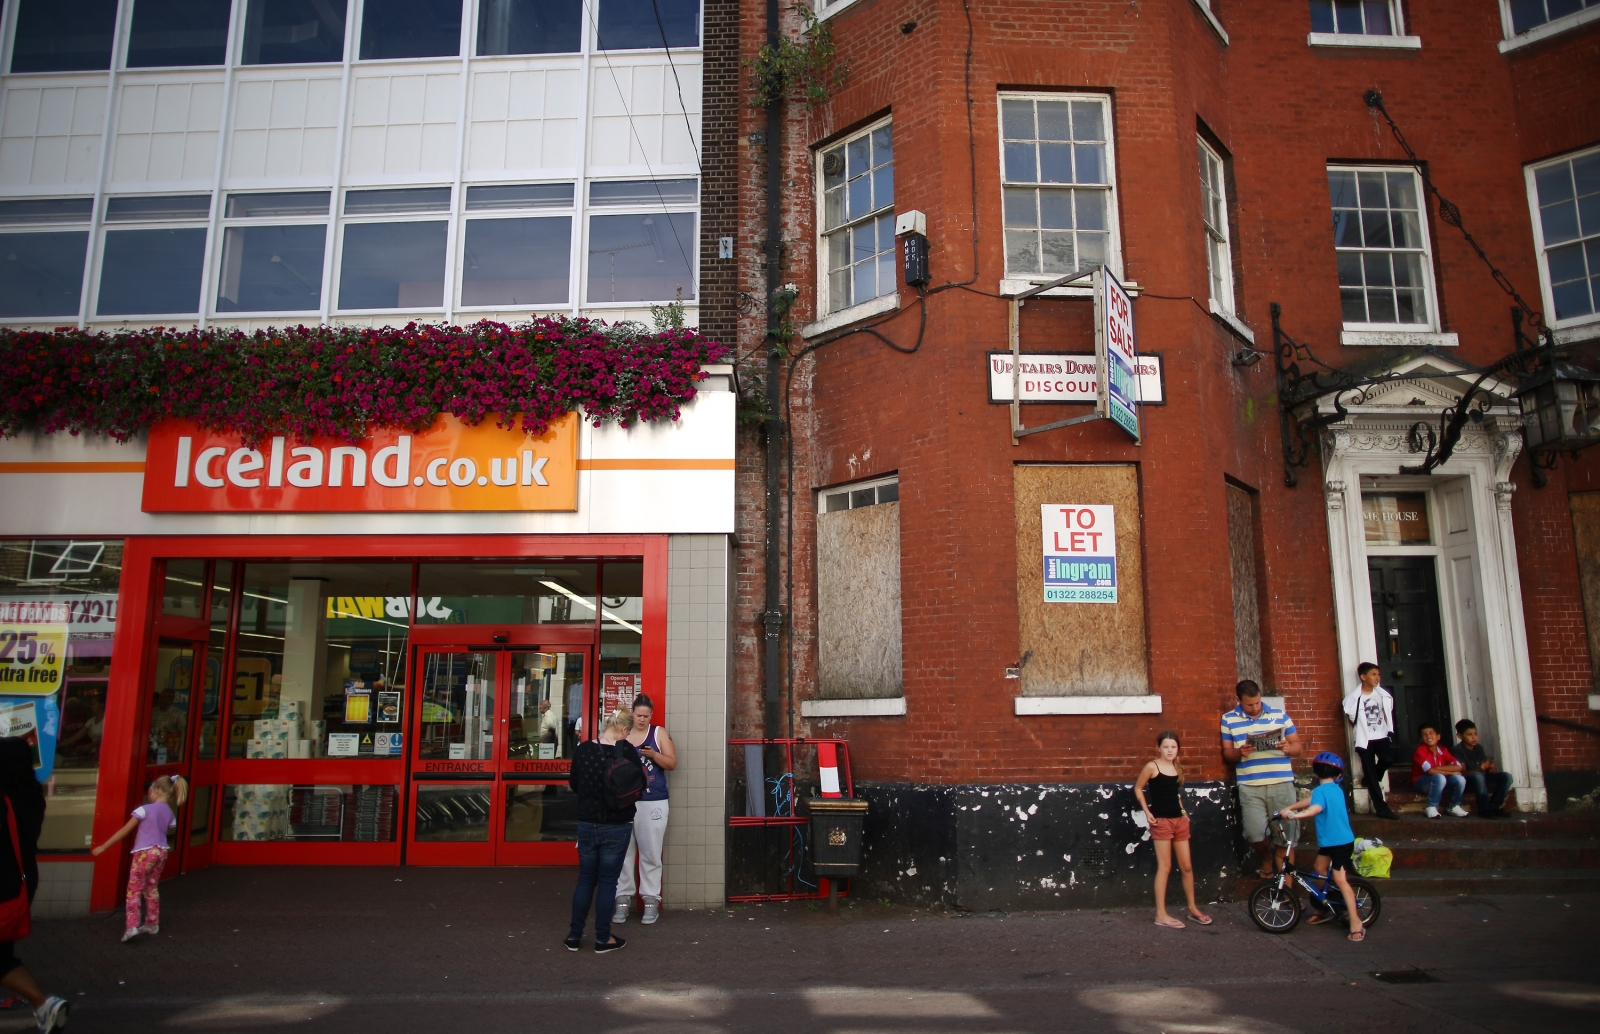 iceland foods faces legal action from the icelandic